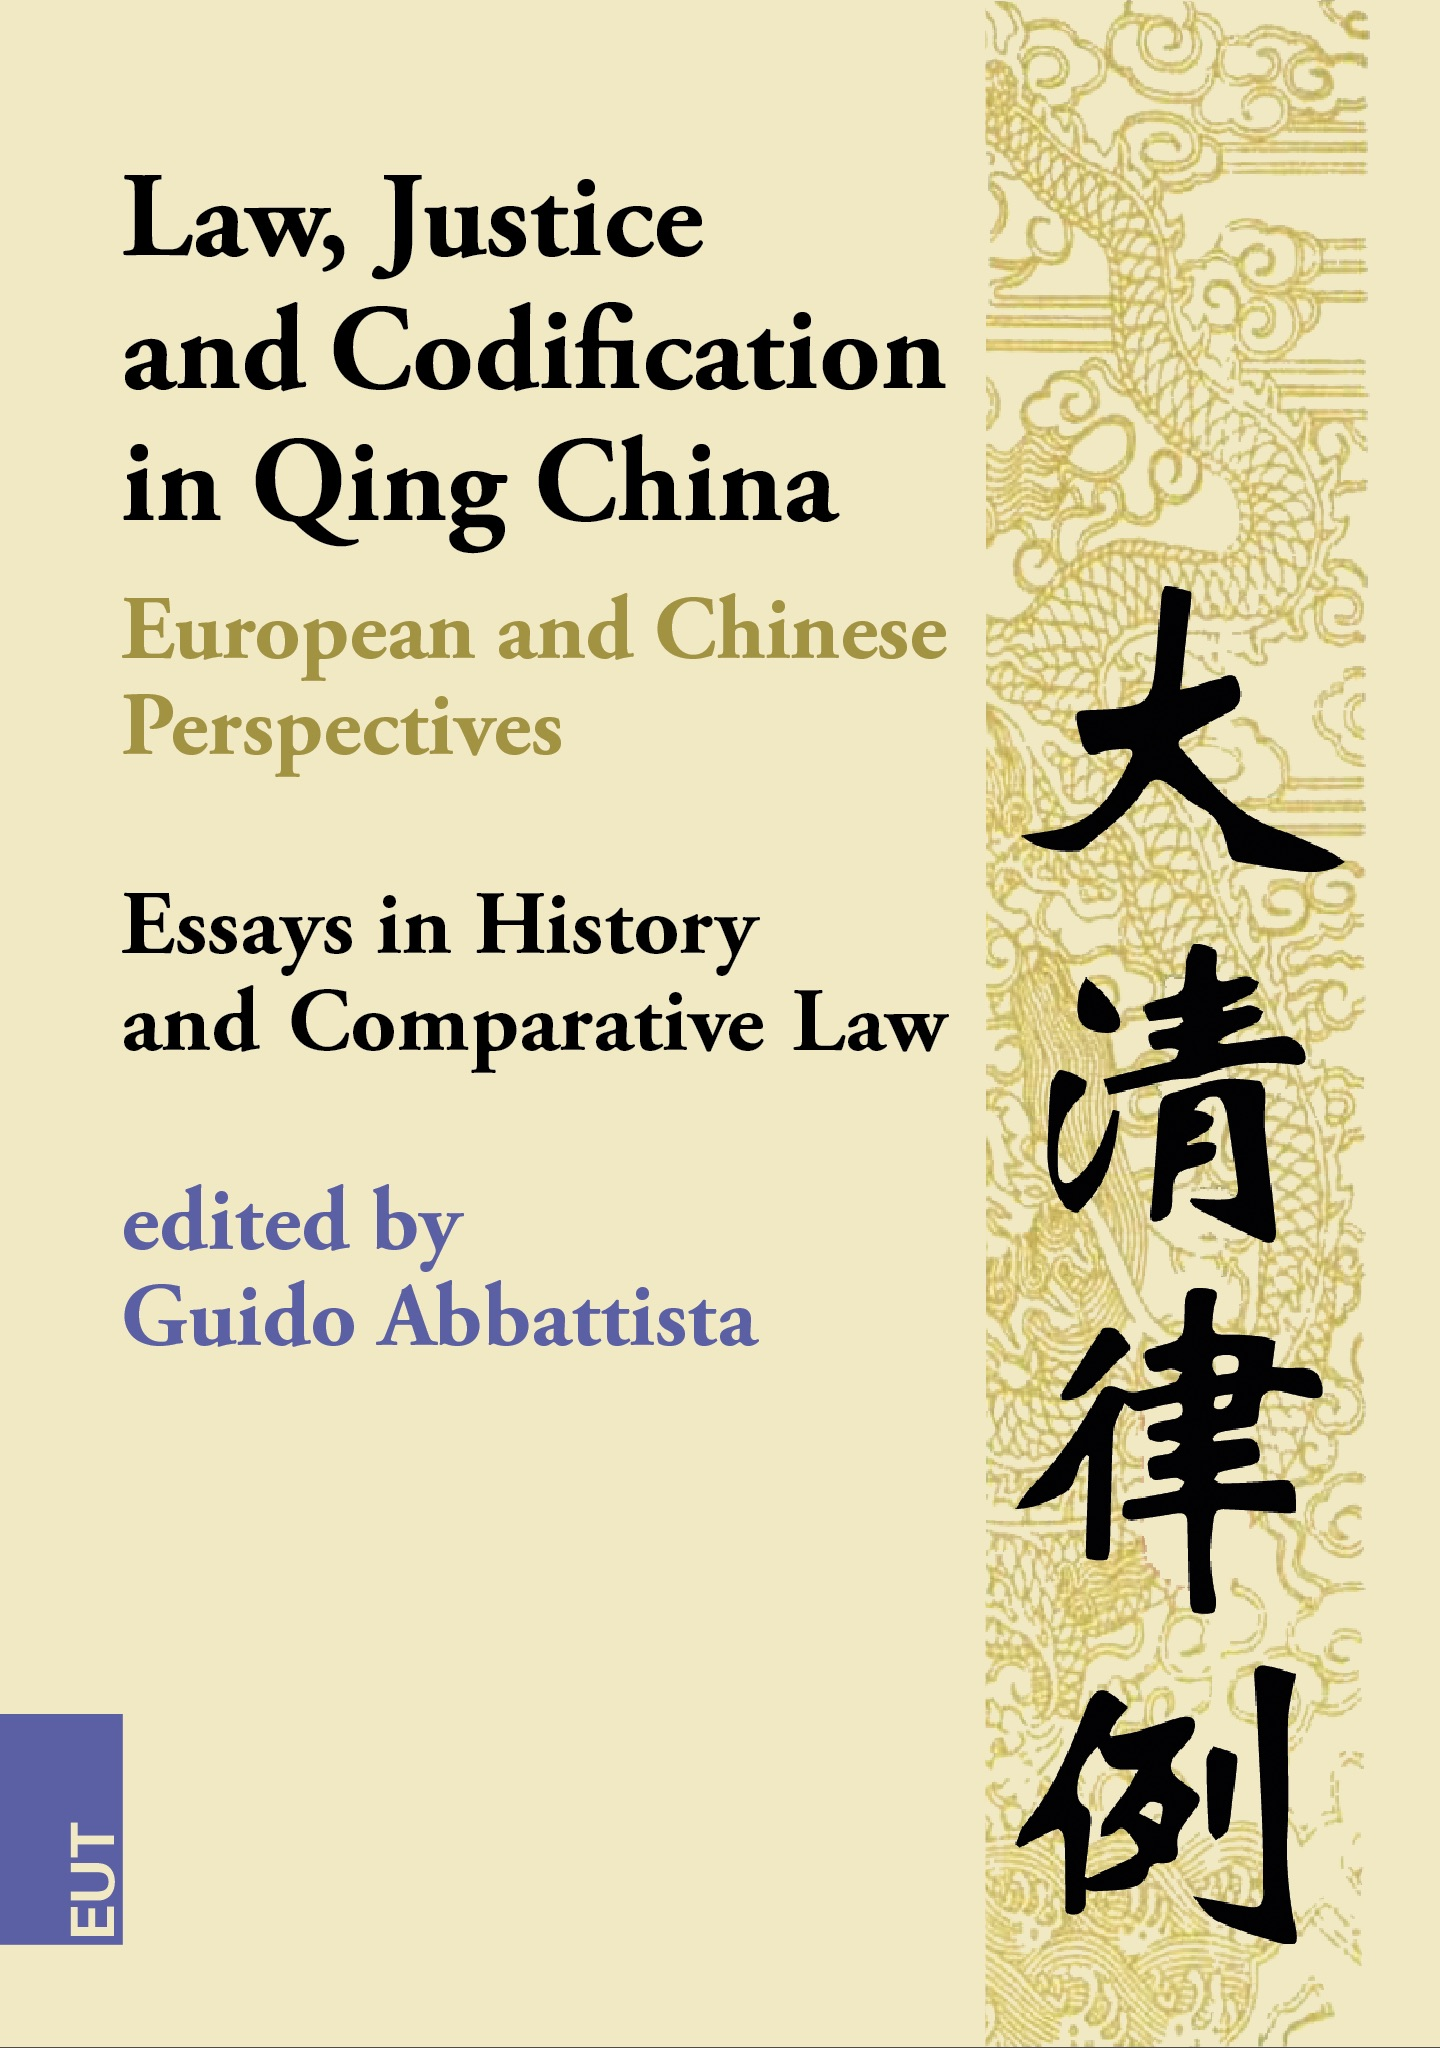 law justice and codification in qing european and chinese  law justice and codification in qing european and chinese perspectives essays in history and comparative law 11 collection home page